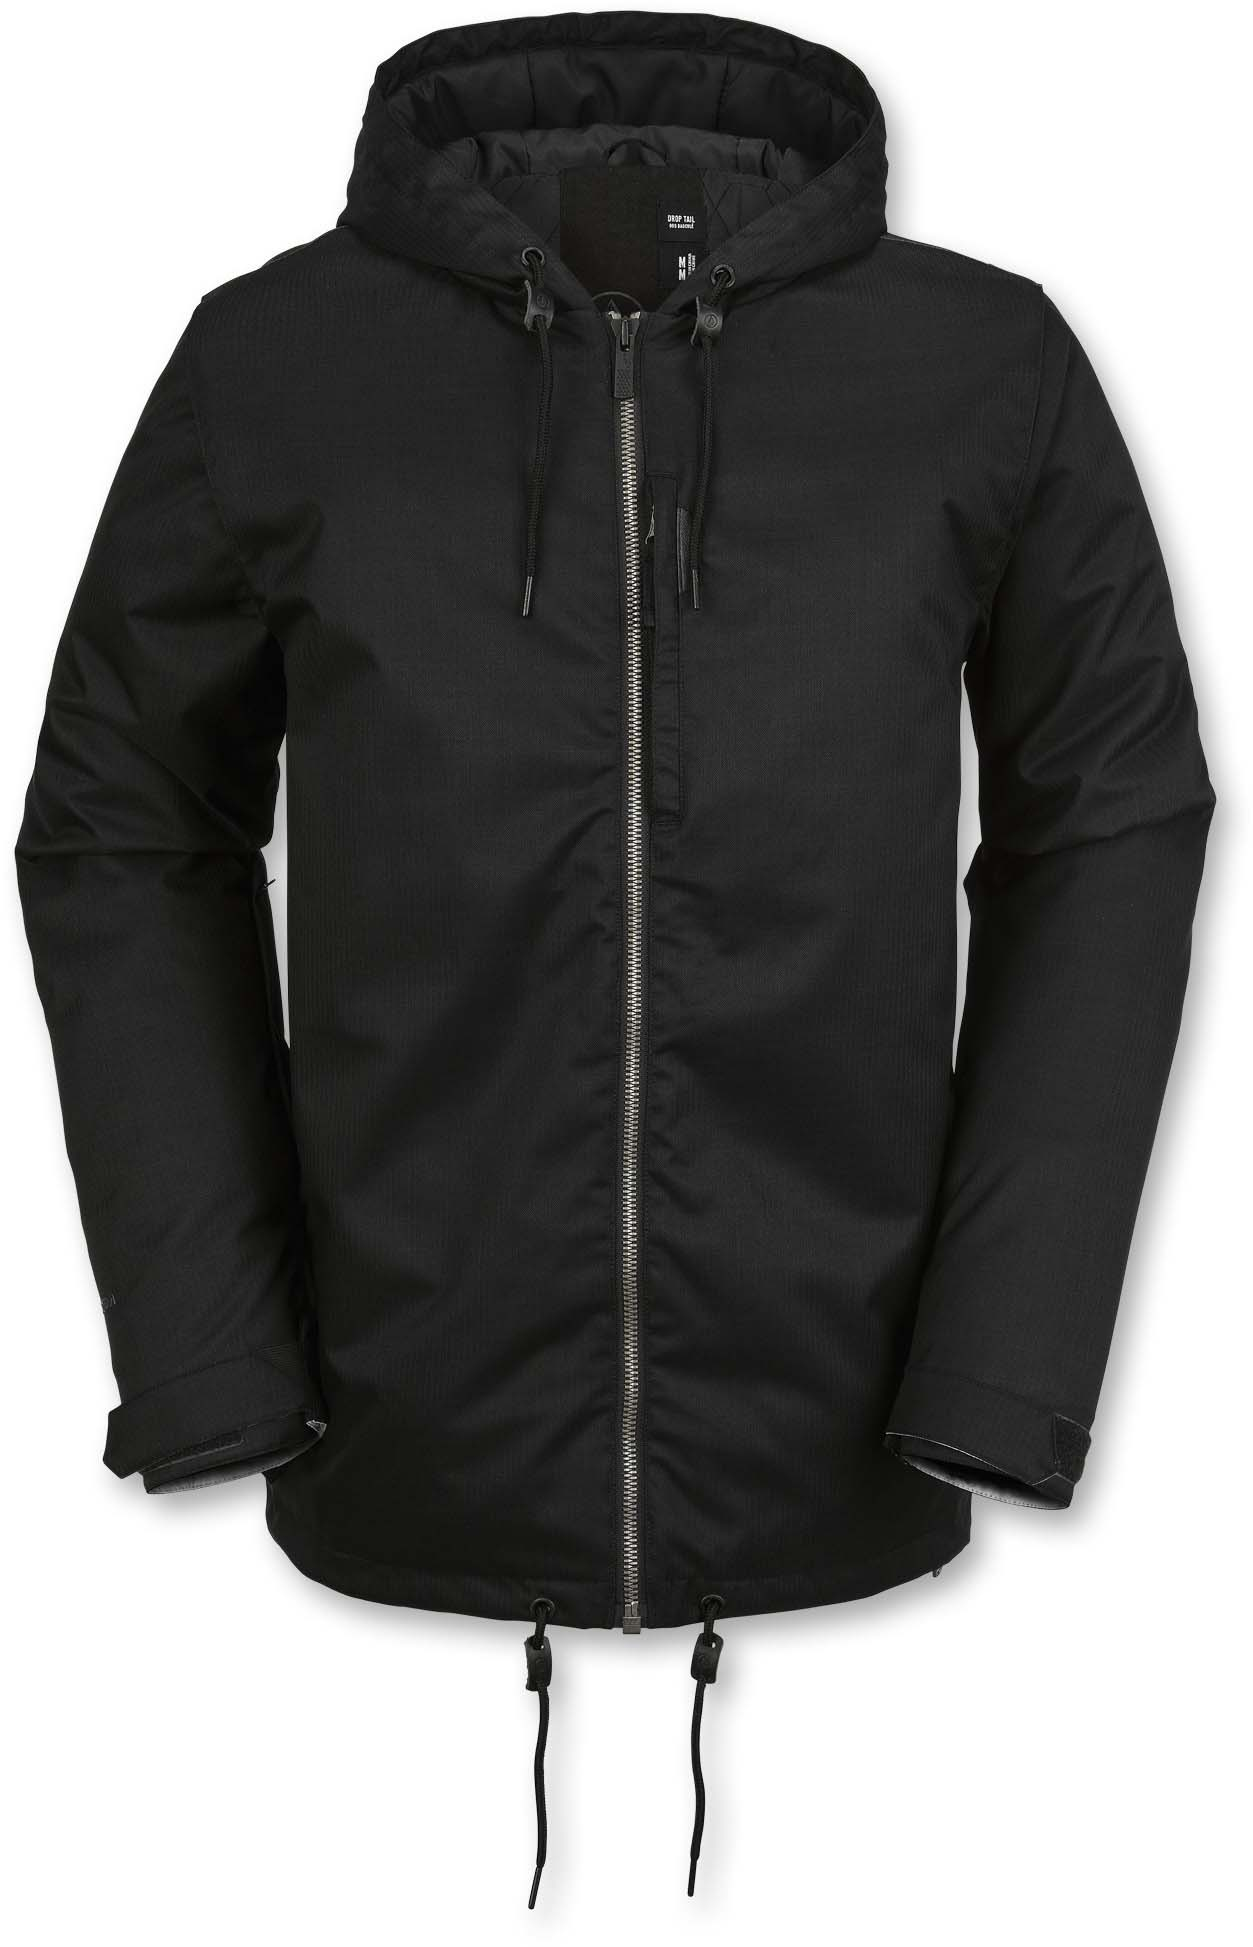 image volcom-patch-insulated-jacket-jpg